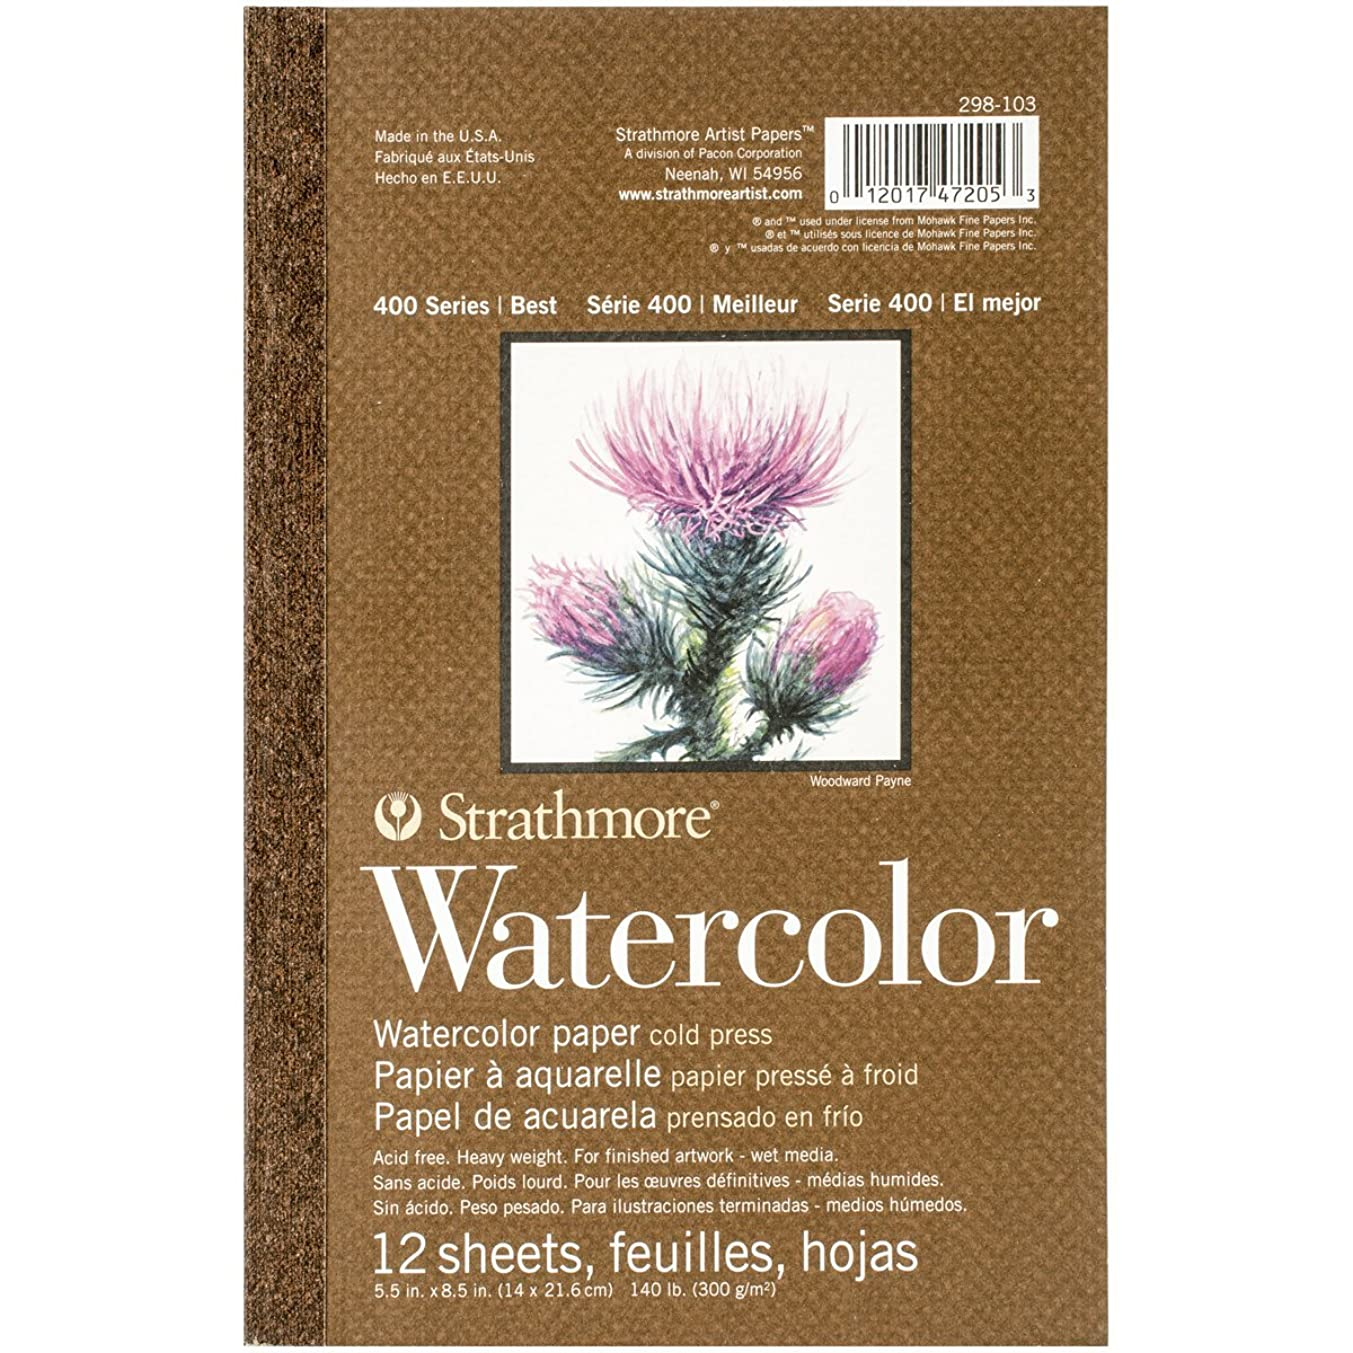 Strathmore 298-103 400 Series Watercolor Pad, 5.5